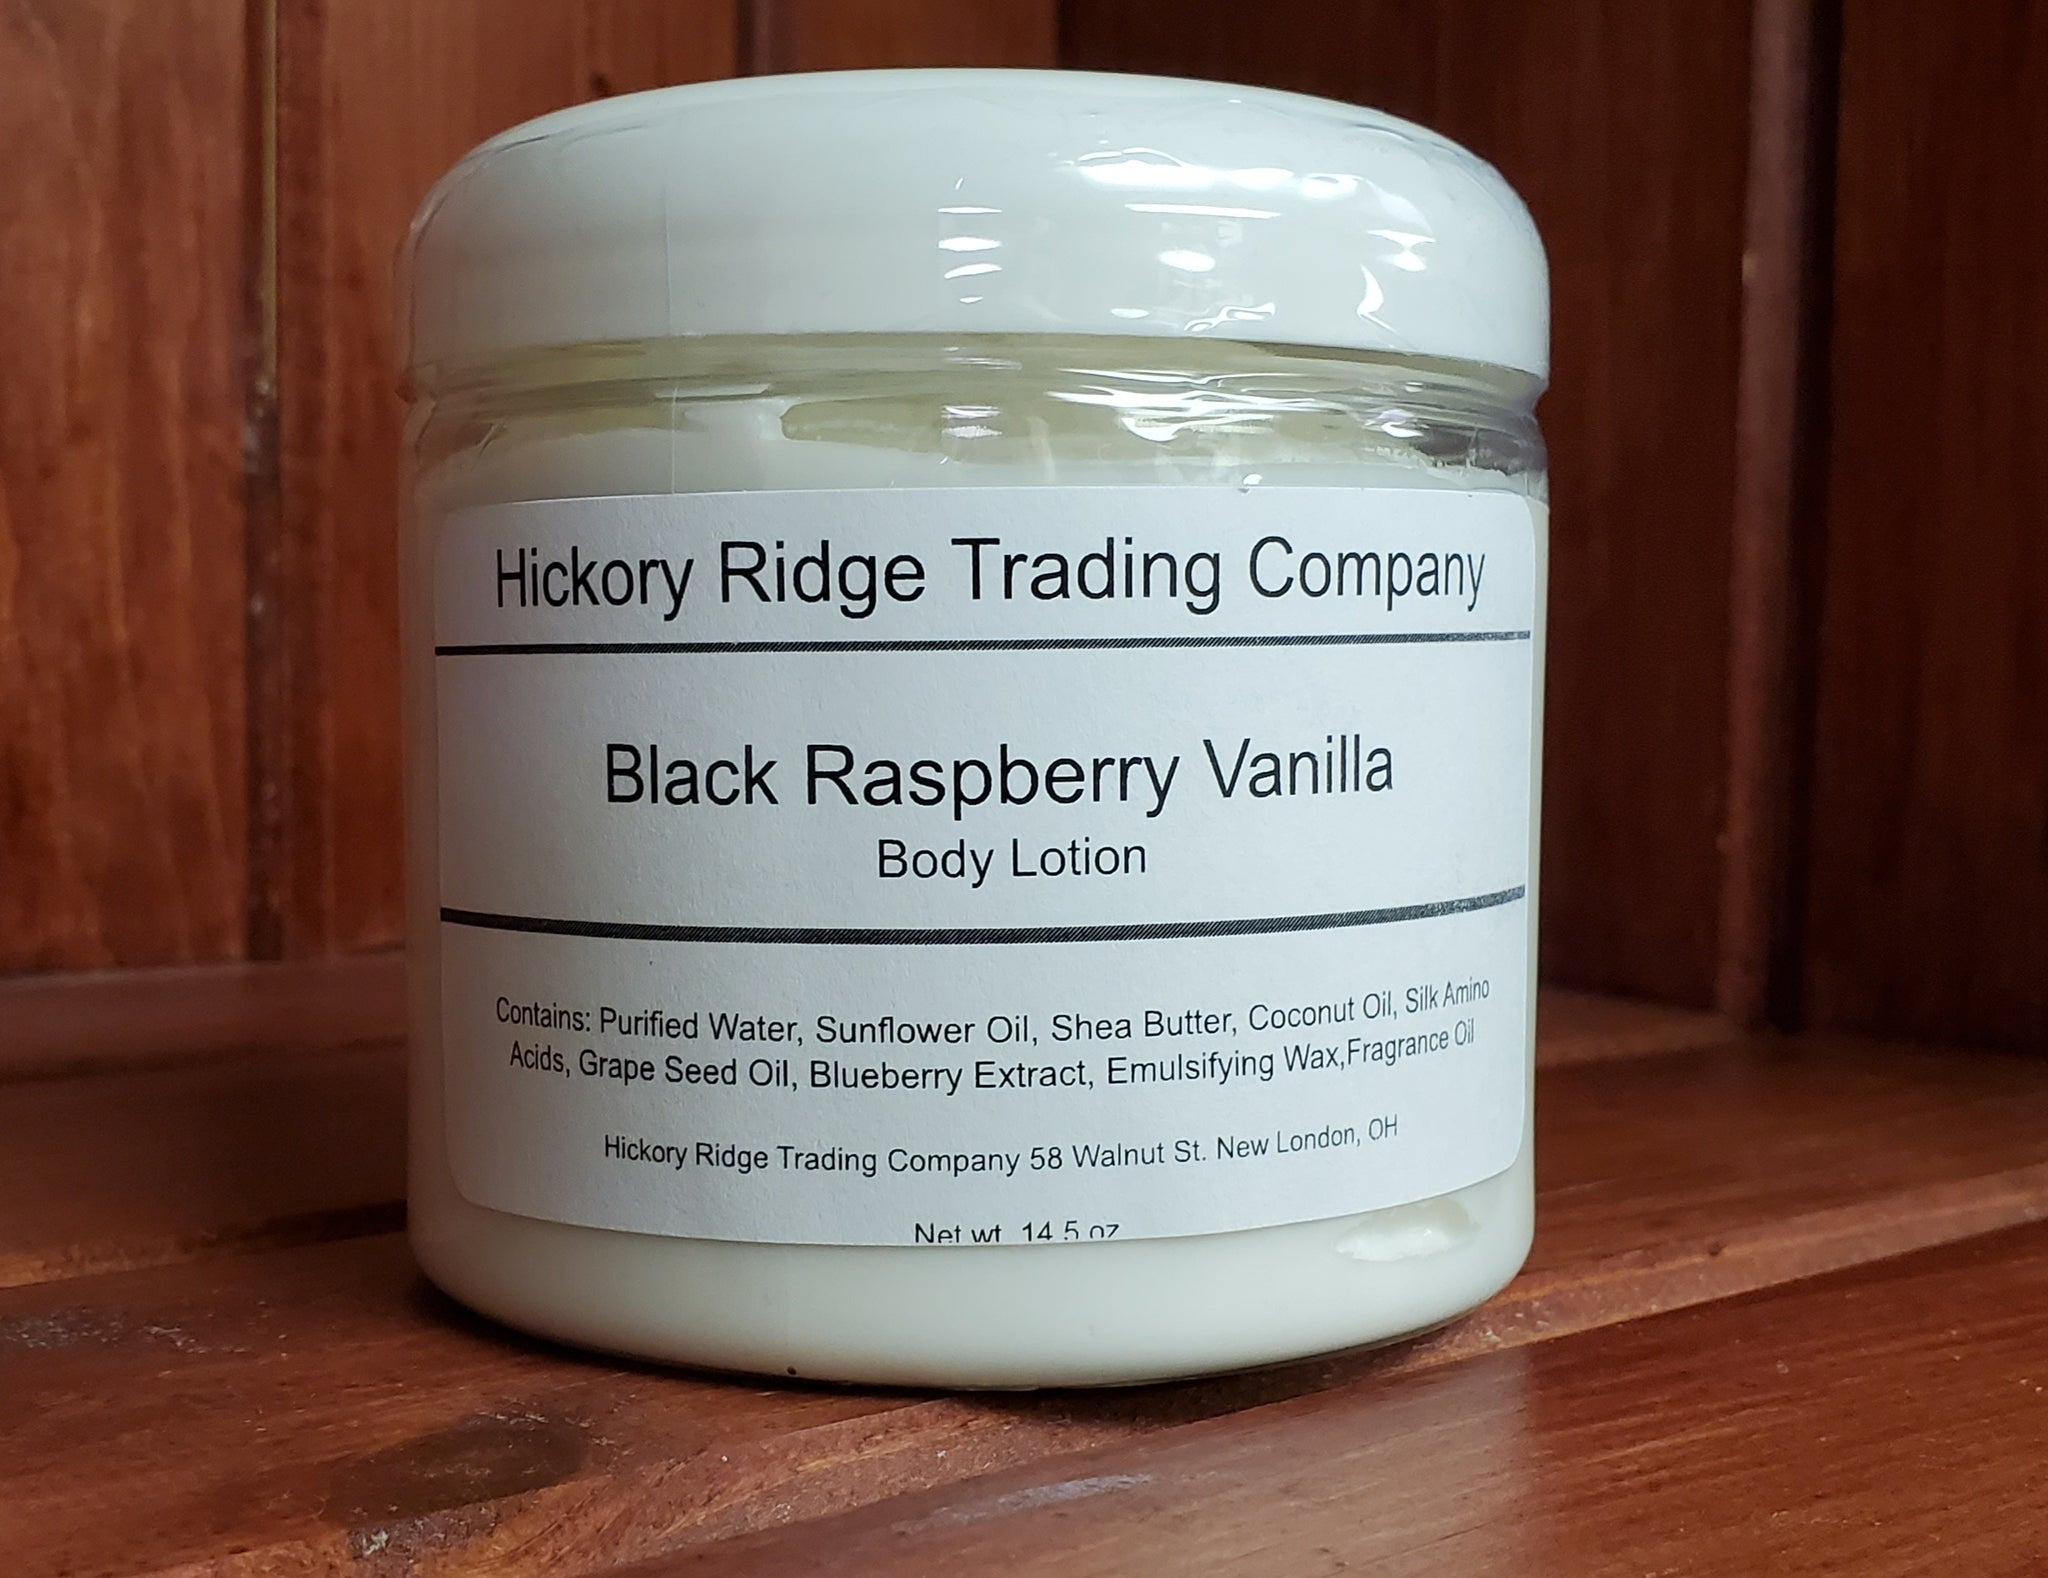 Black Raspberry Vanilla 14.5 oz